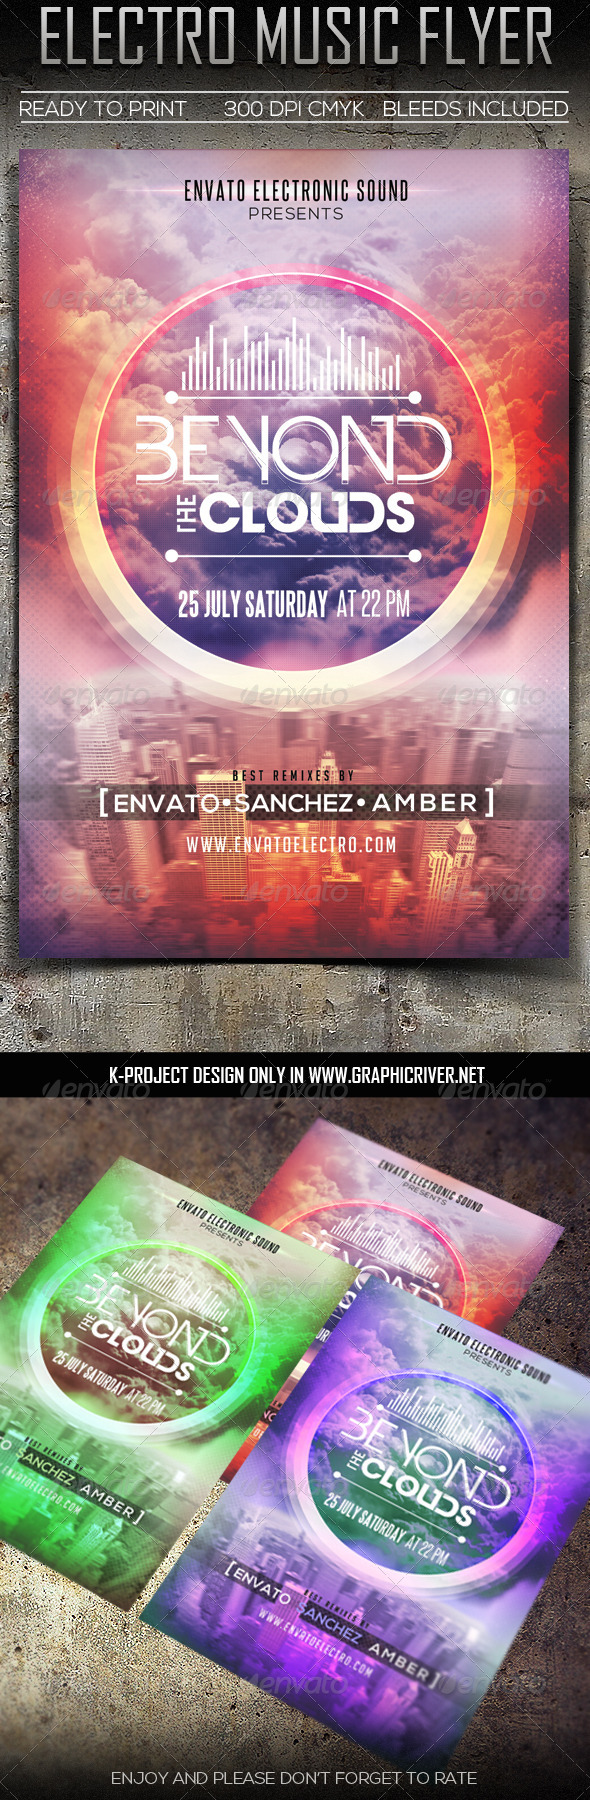 GraphicRiver Electro Music Flyer 7910635